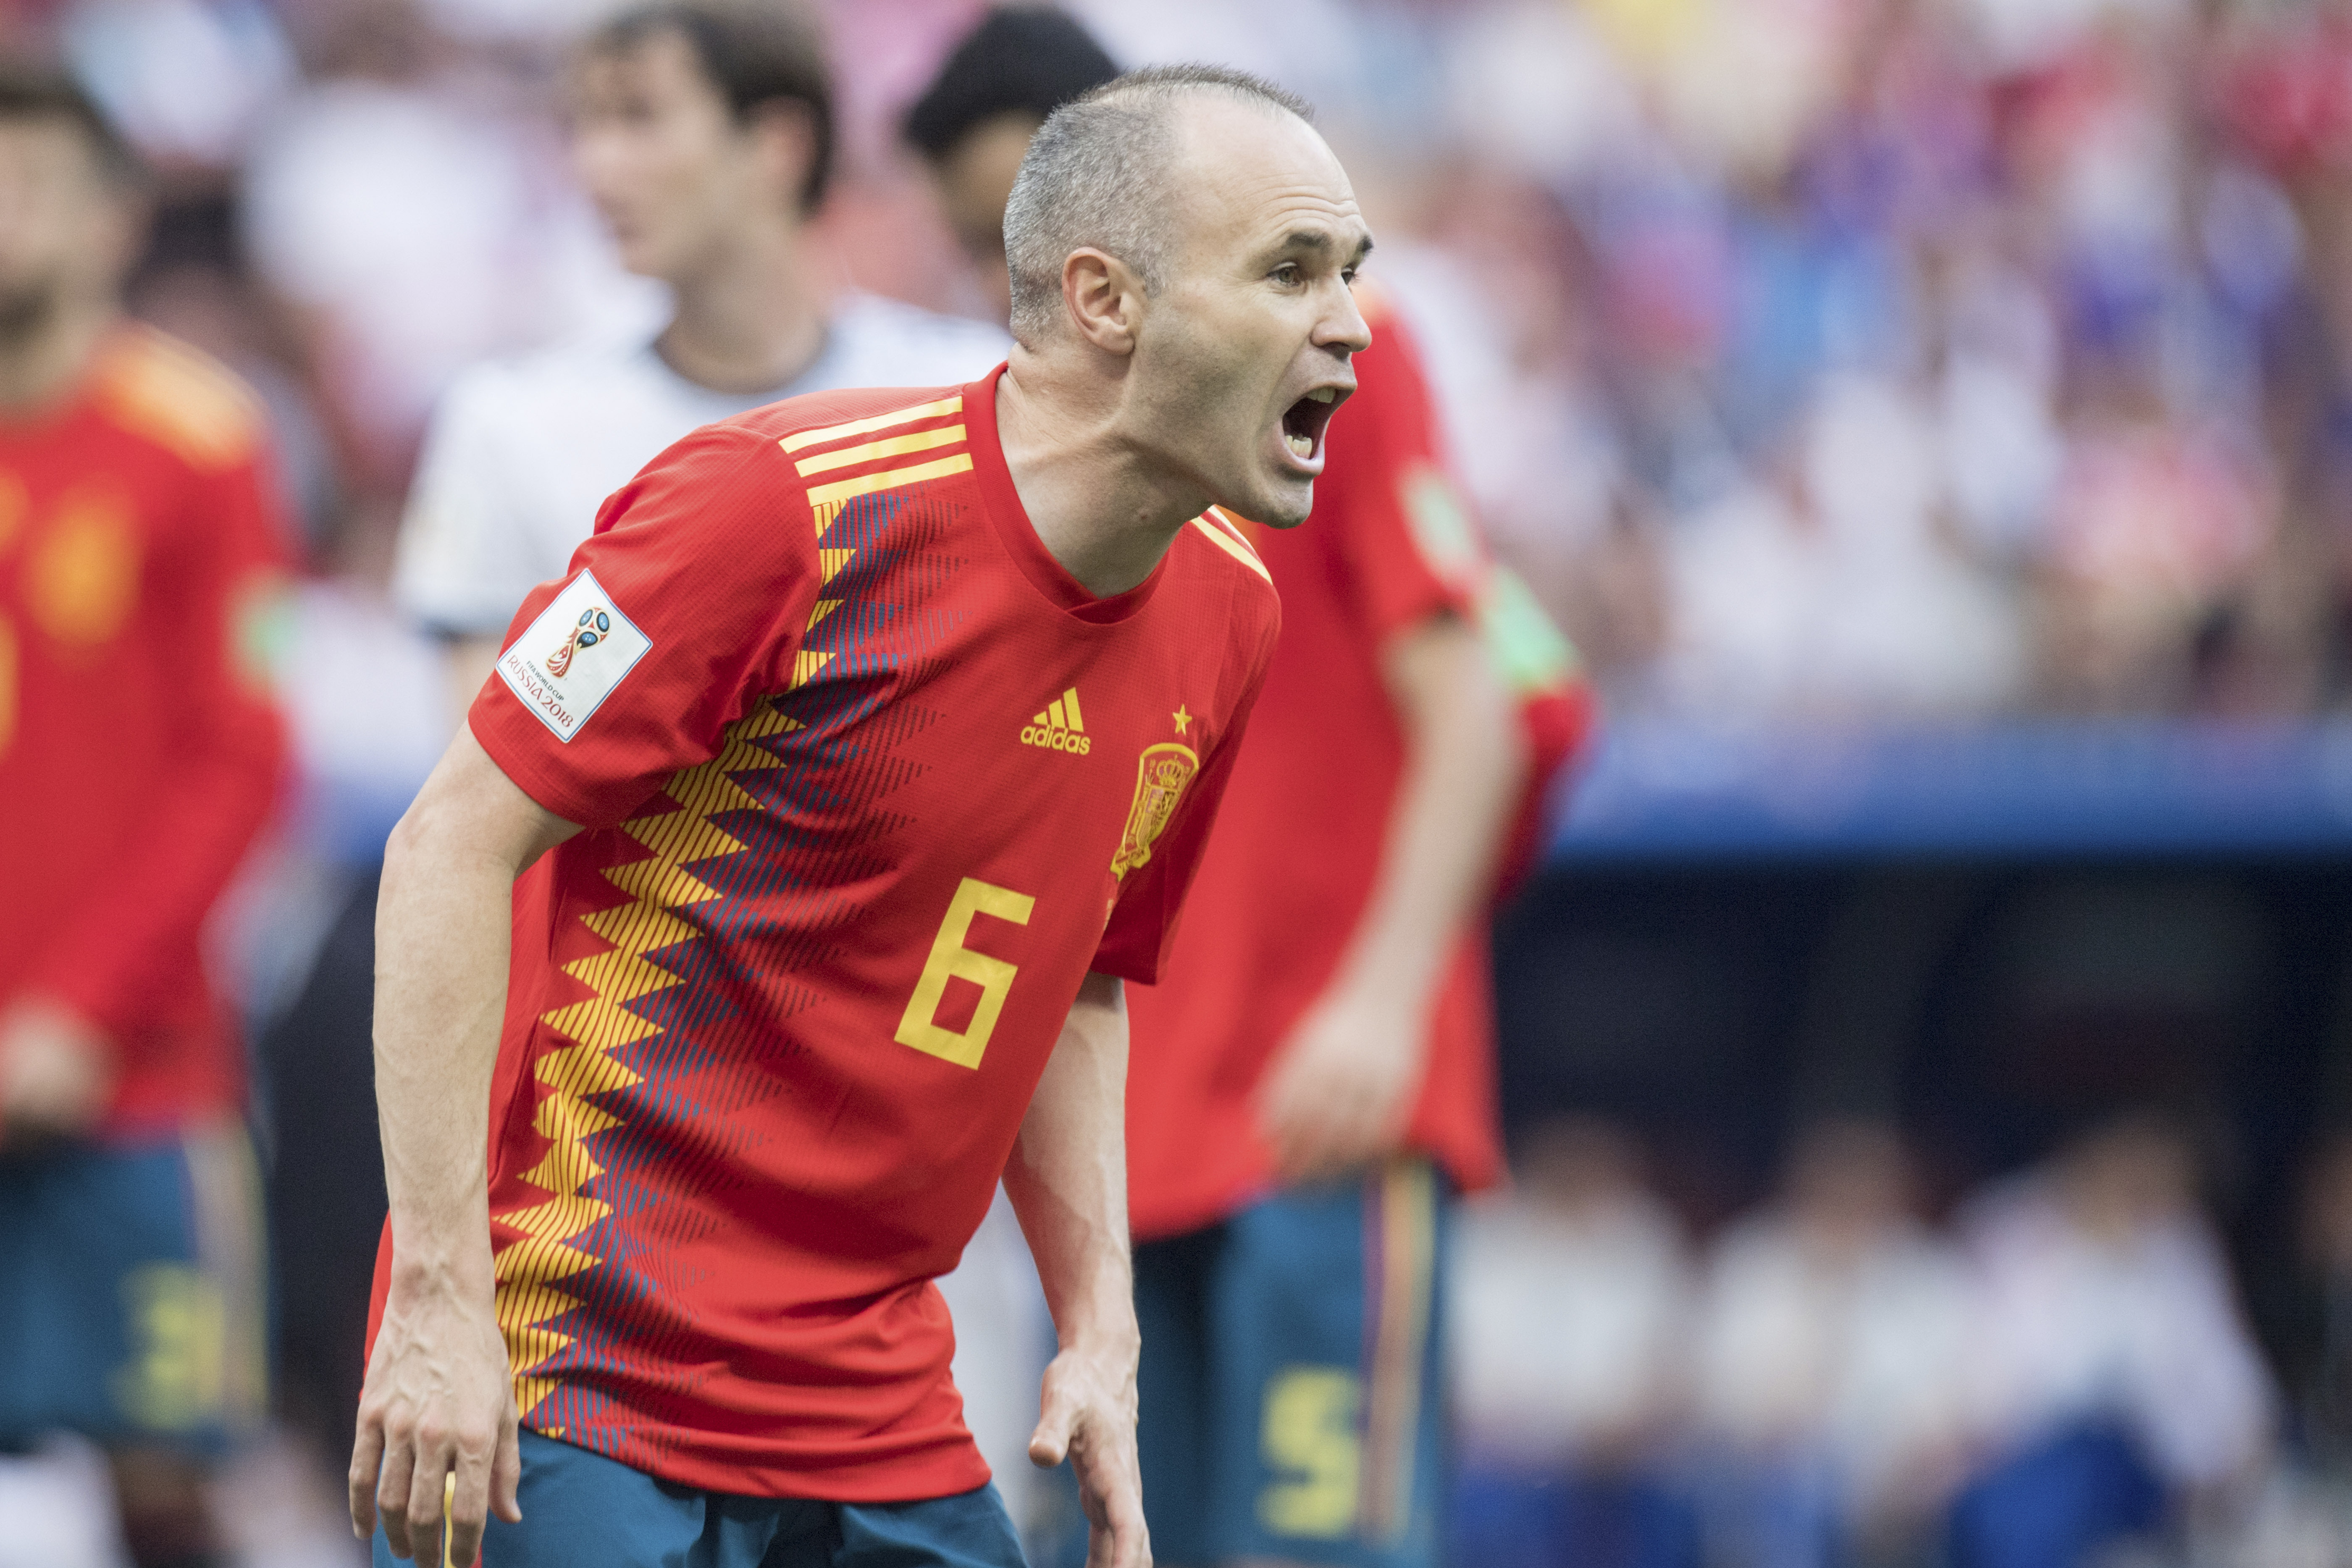 Andres Iniesta Nominated For 12th Consecutive FIFA FIFPro